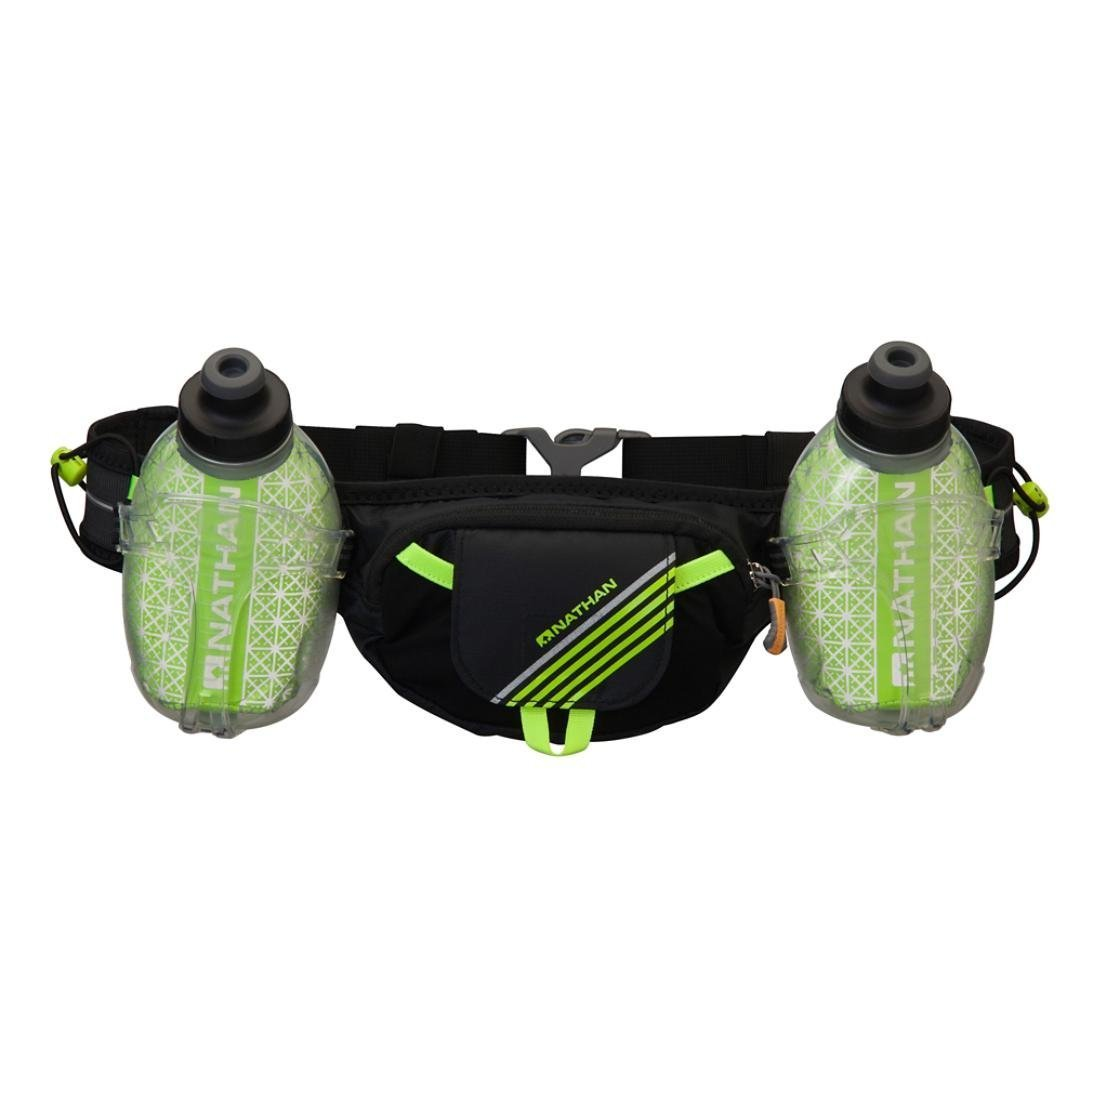 Nathan Trail Mix Plus Insulated Hydration Belt, Black/Safety Yellow, One Size